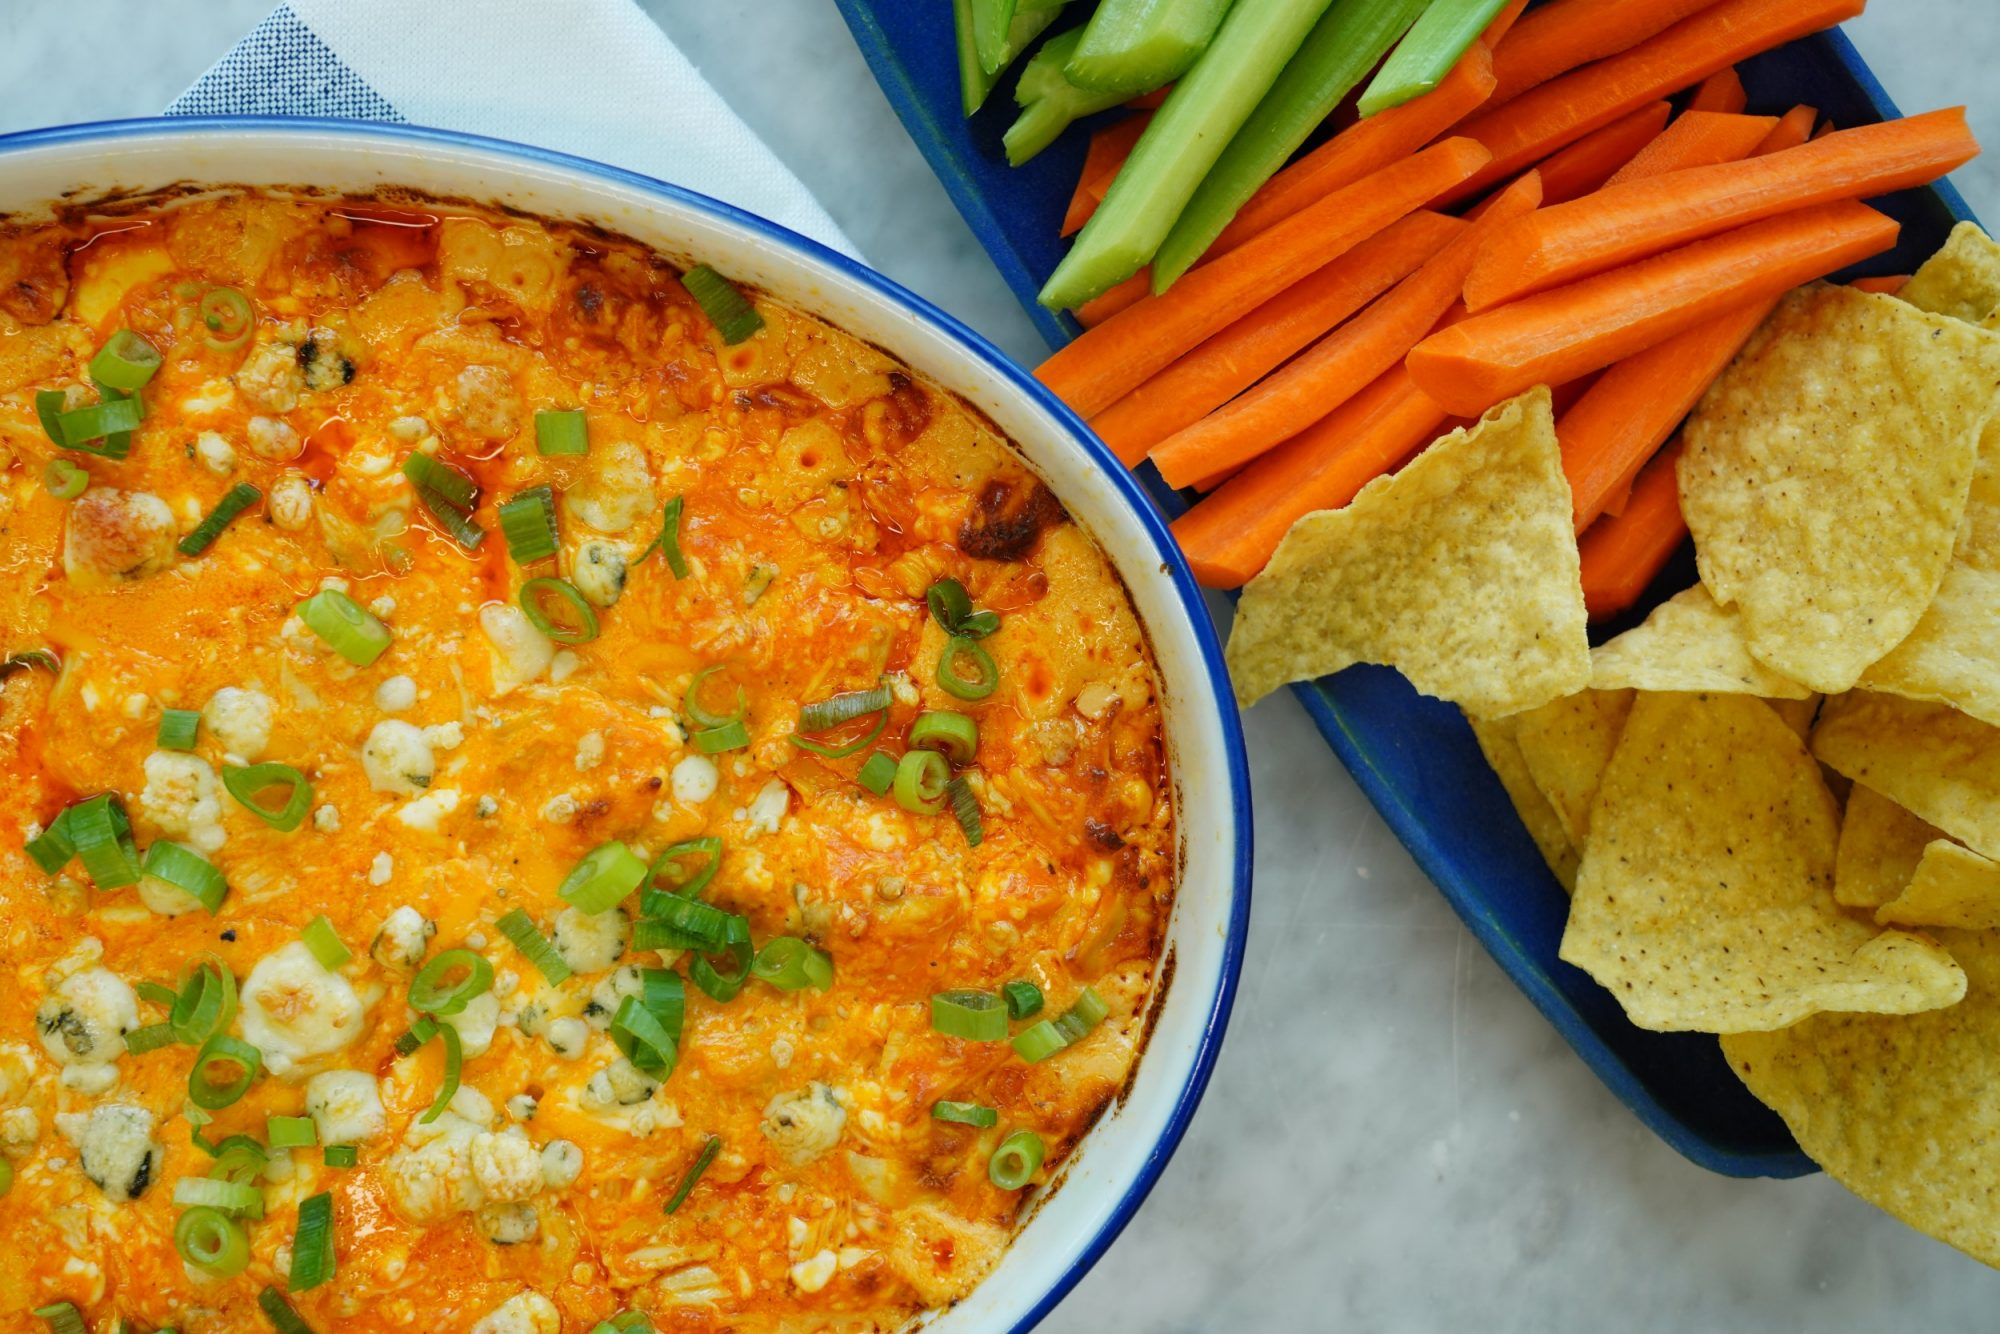 baking dish filled with The Best Buffalo Chicken Dip recipe garnished with blue cheese and minced scallions and served with celery sticks, carrot sticks, and tortilla chips